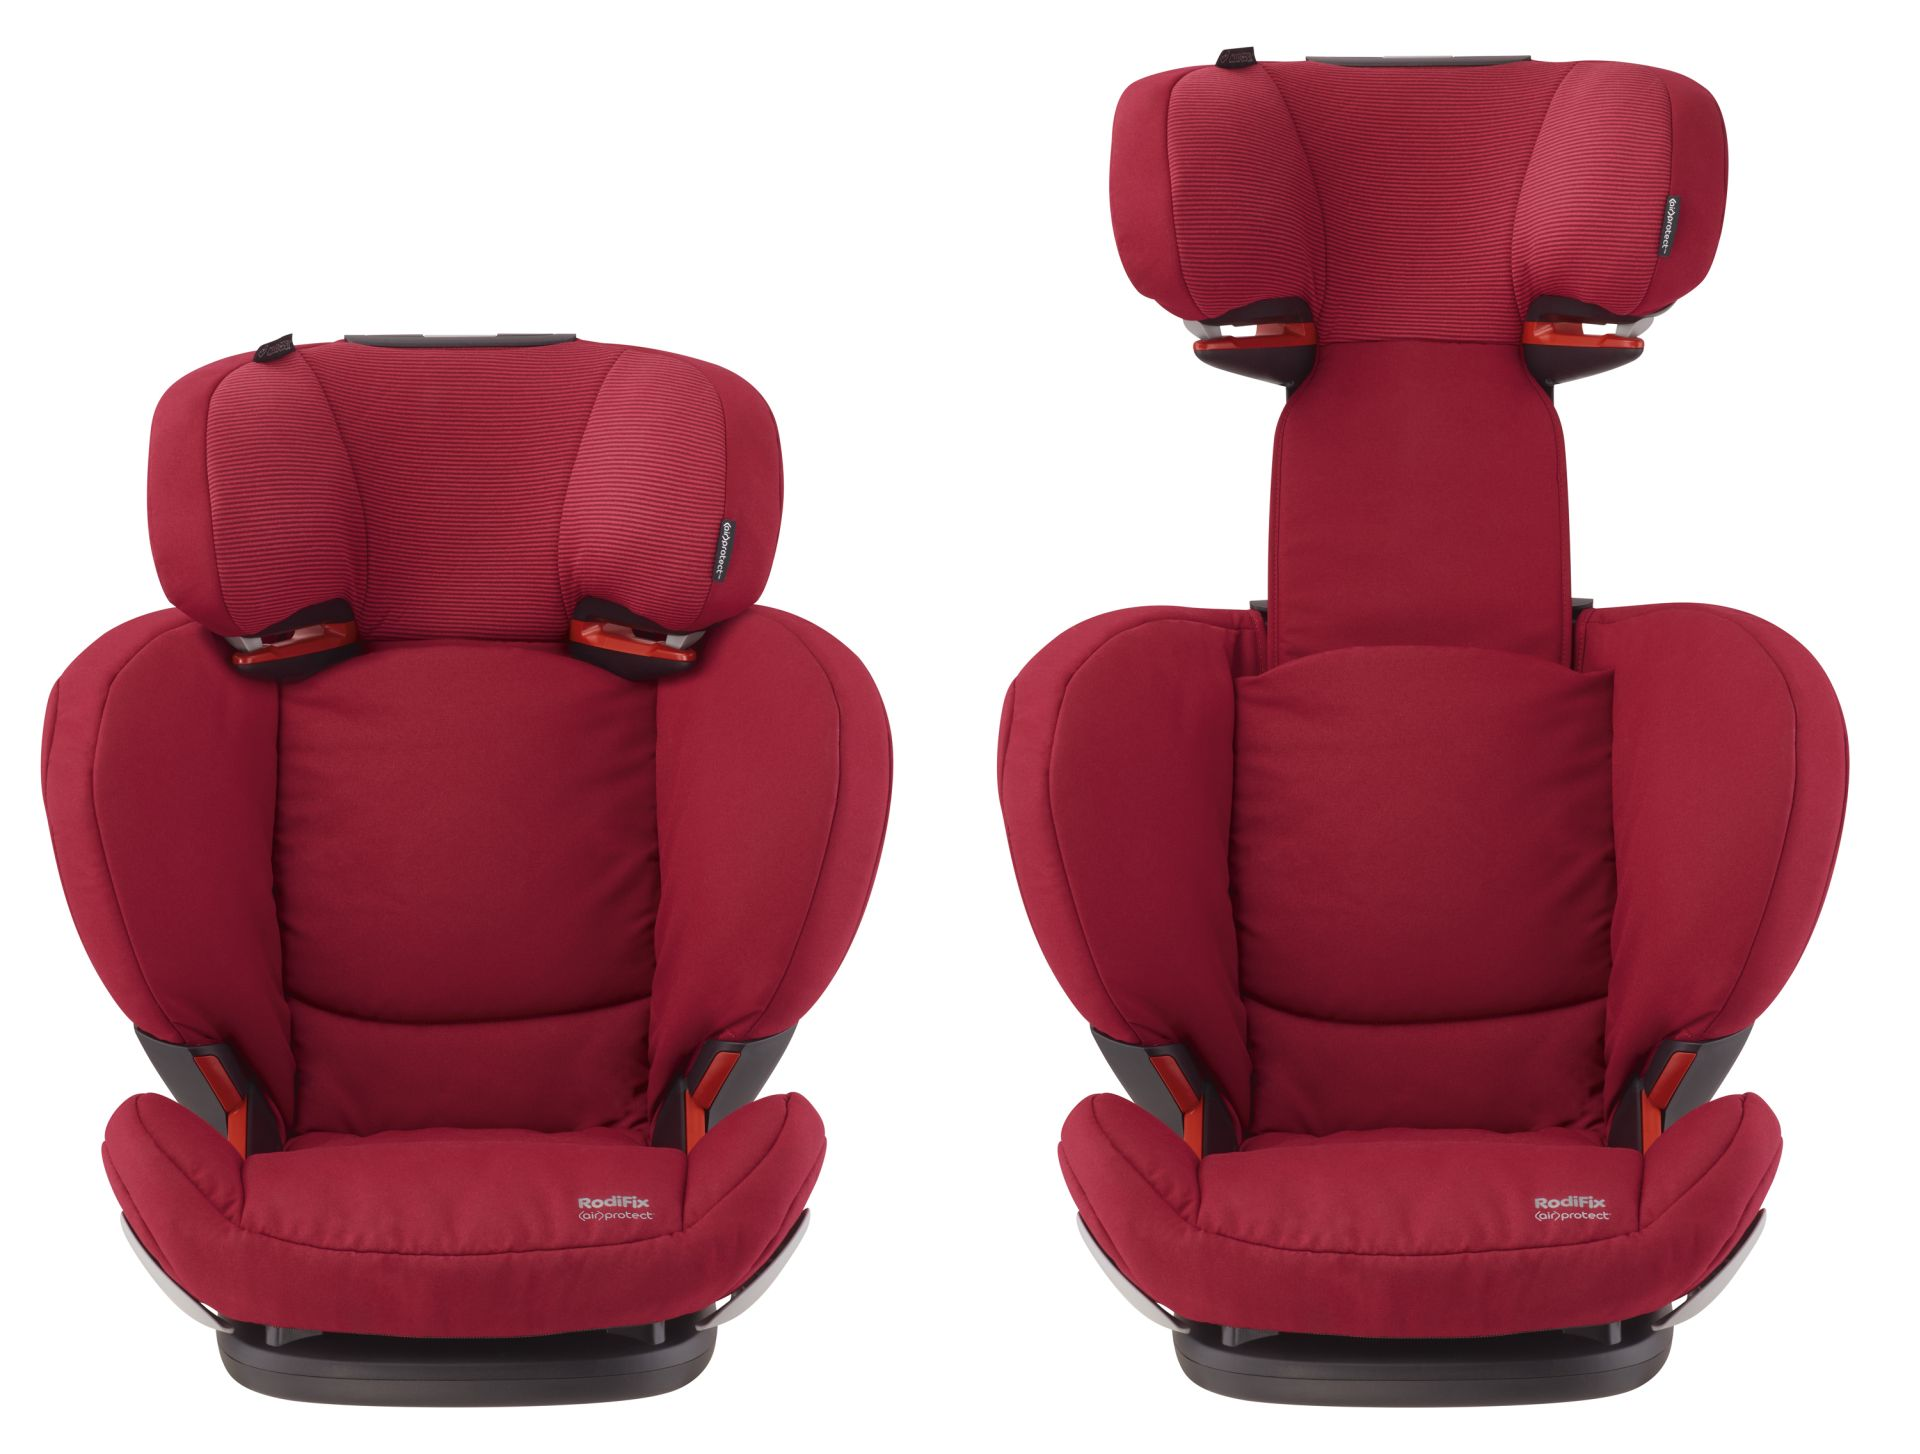 maxi cosi child car seat rodifix airprotect 2017 robin red buy at kidsroom car seats. Black Bedroom Furniture Sets. Home Design Ideas